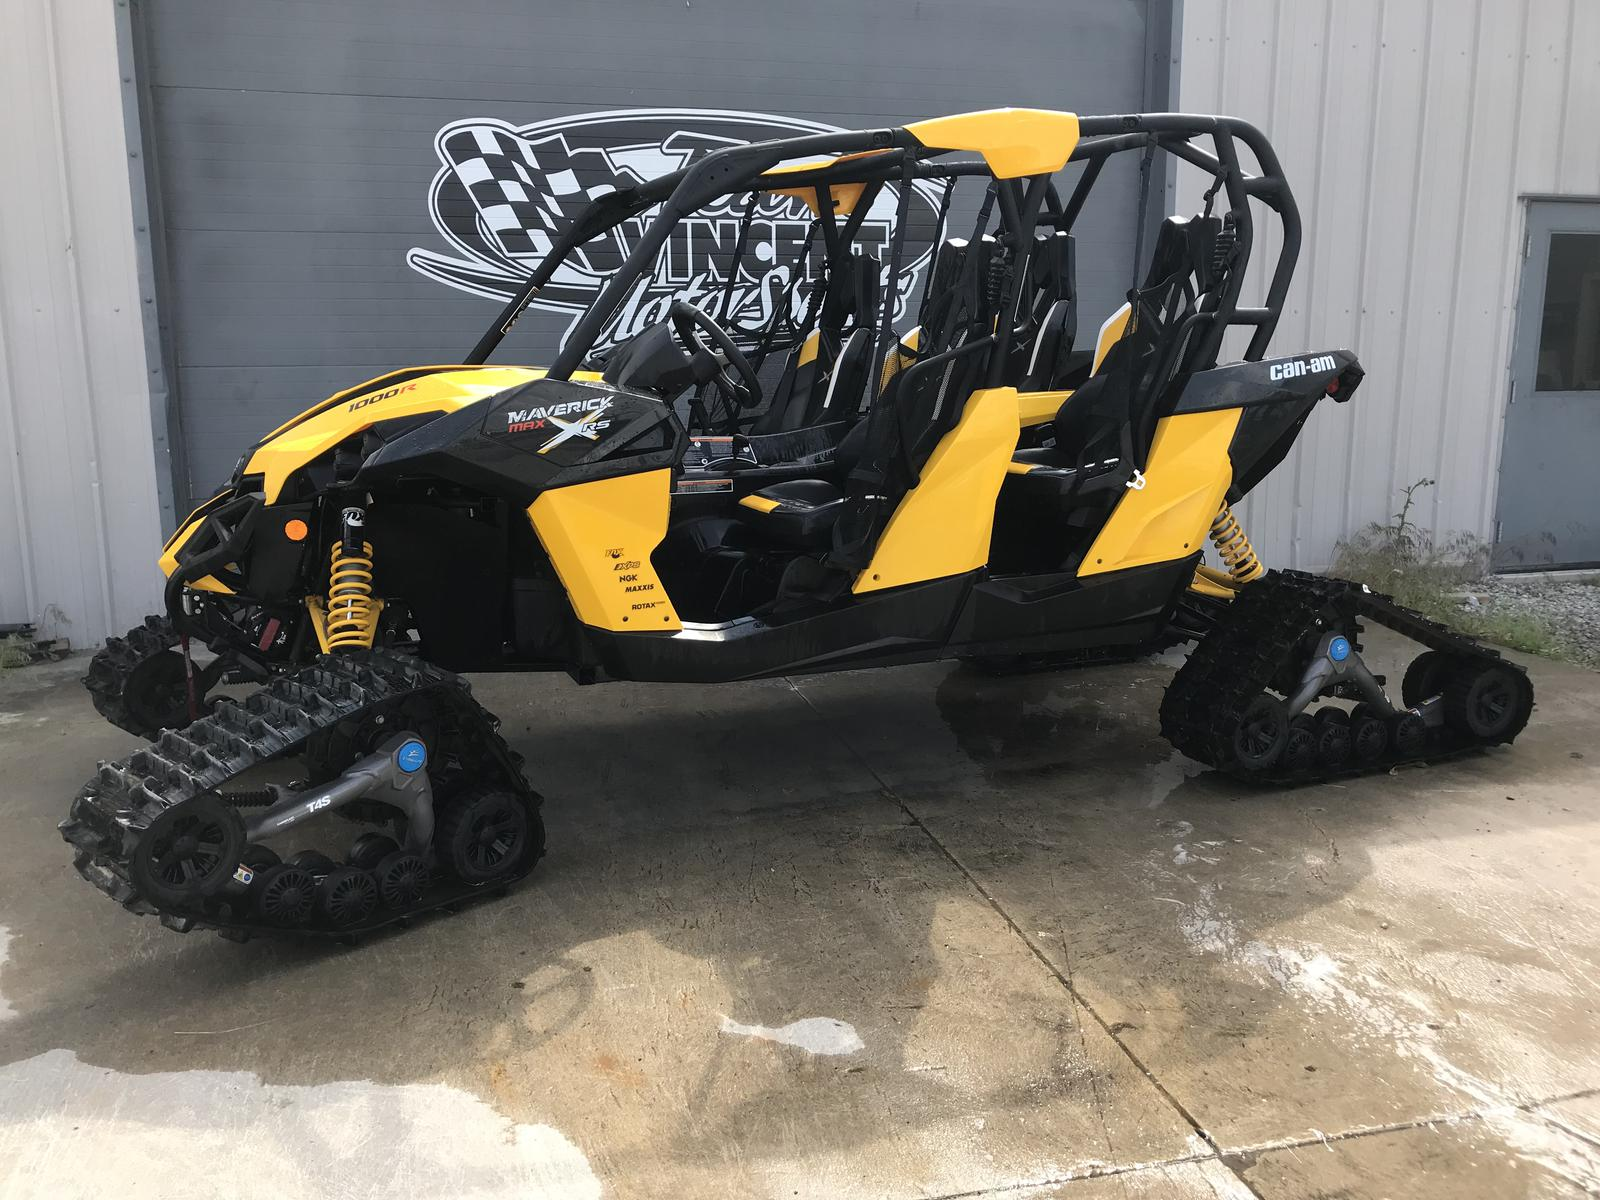 can am atv atvs quads side by sides for sale atv buys shop rh atvbuys com